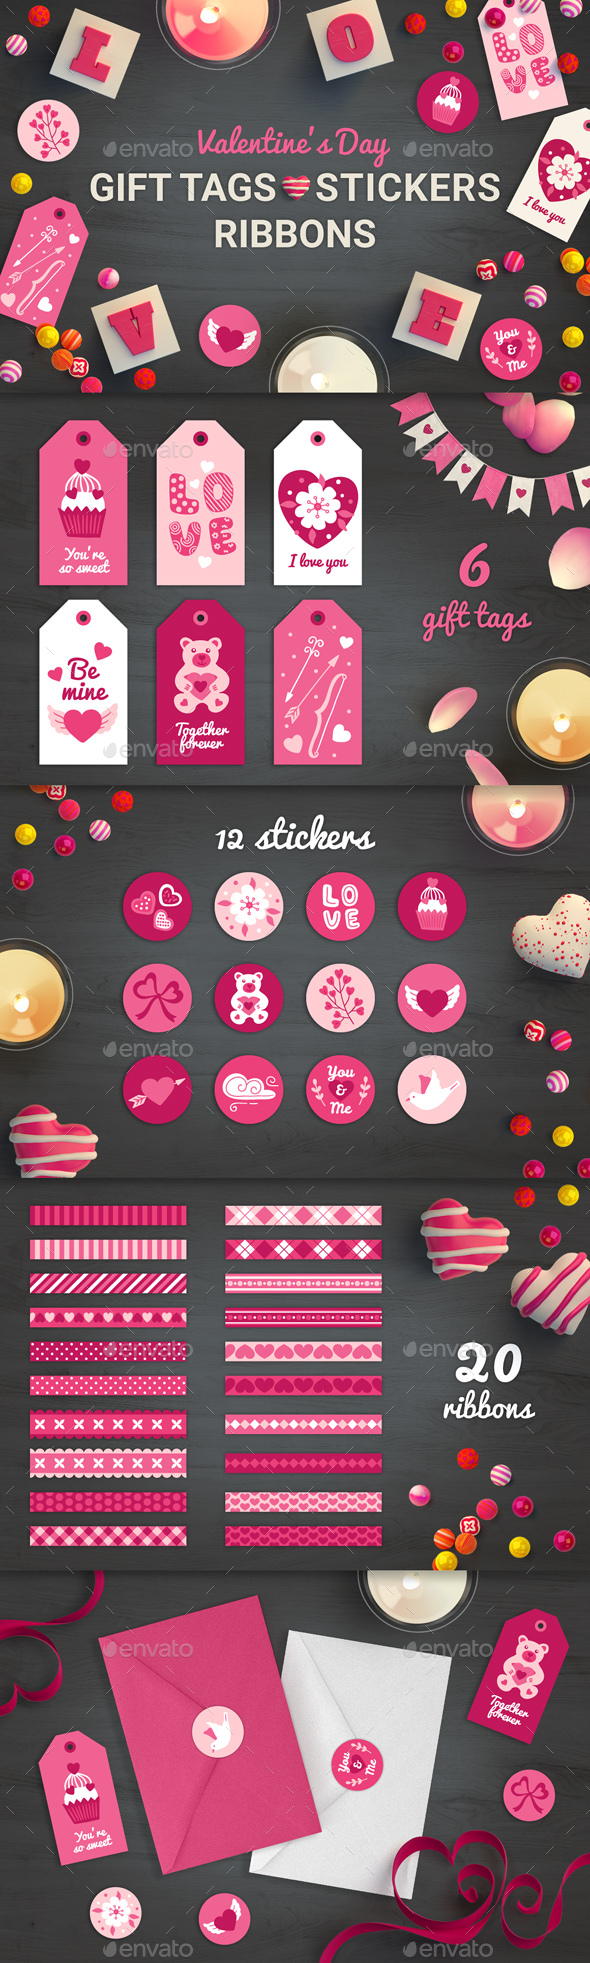 Valentine Gift Tags, Stickers, Ribbons